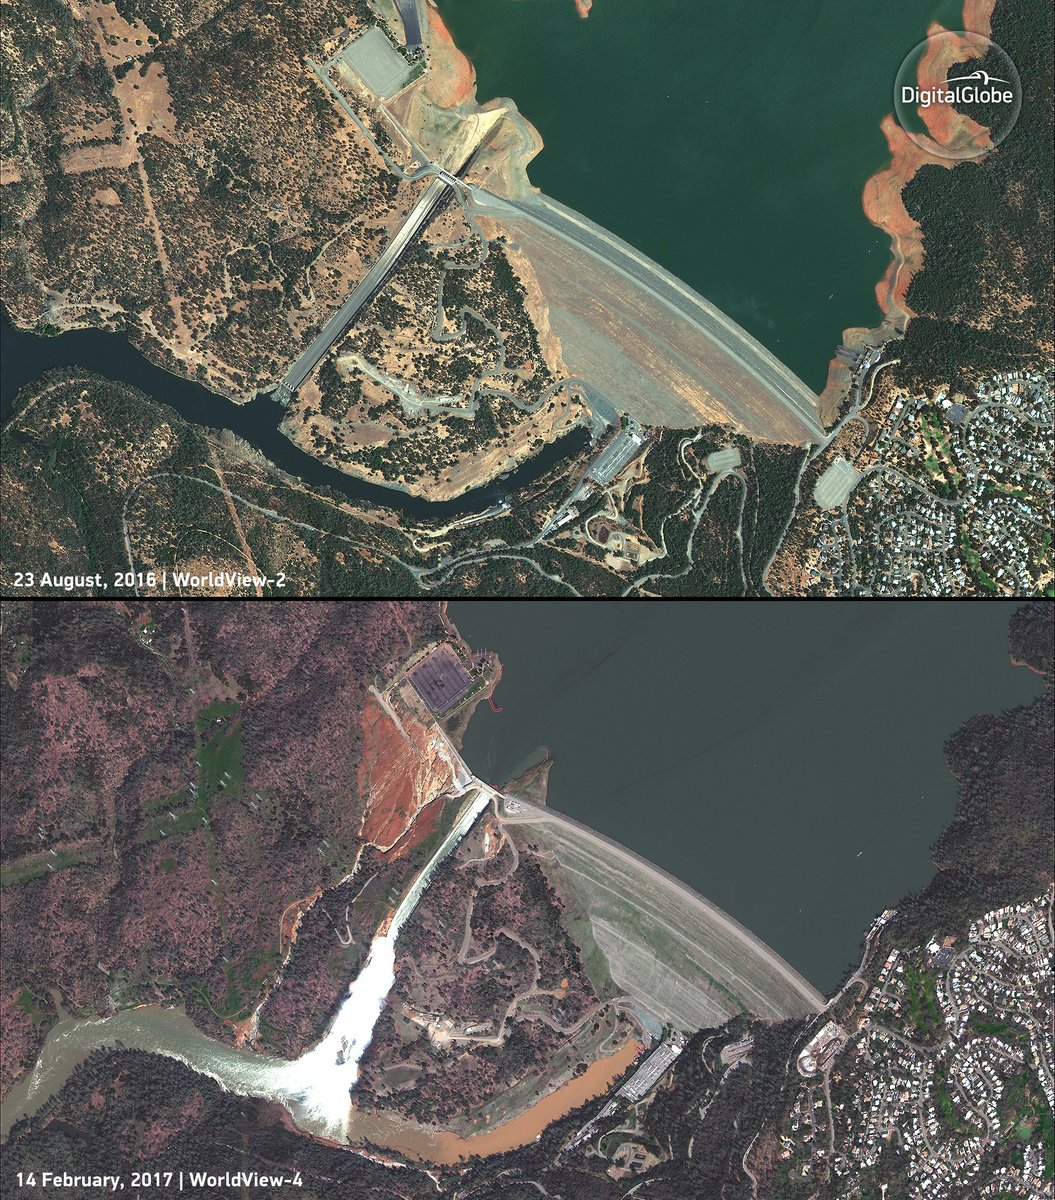 Space-for-All at HobbySpace » Satellite images of the Oroville dam